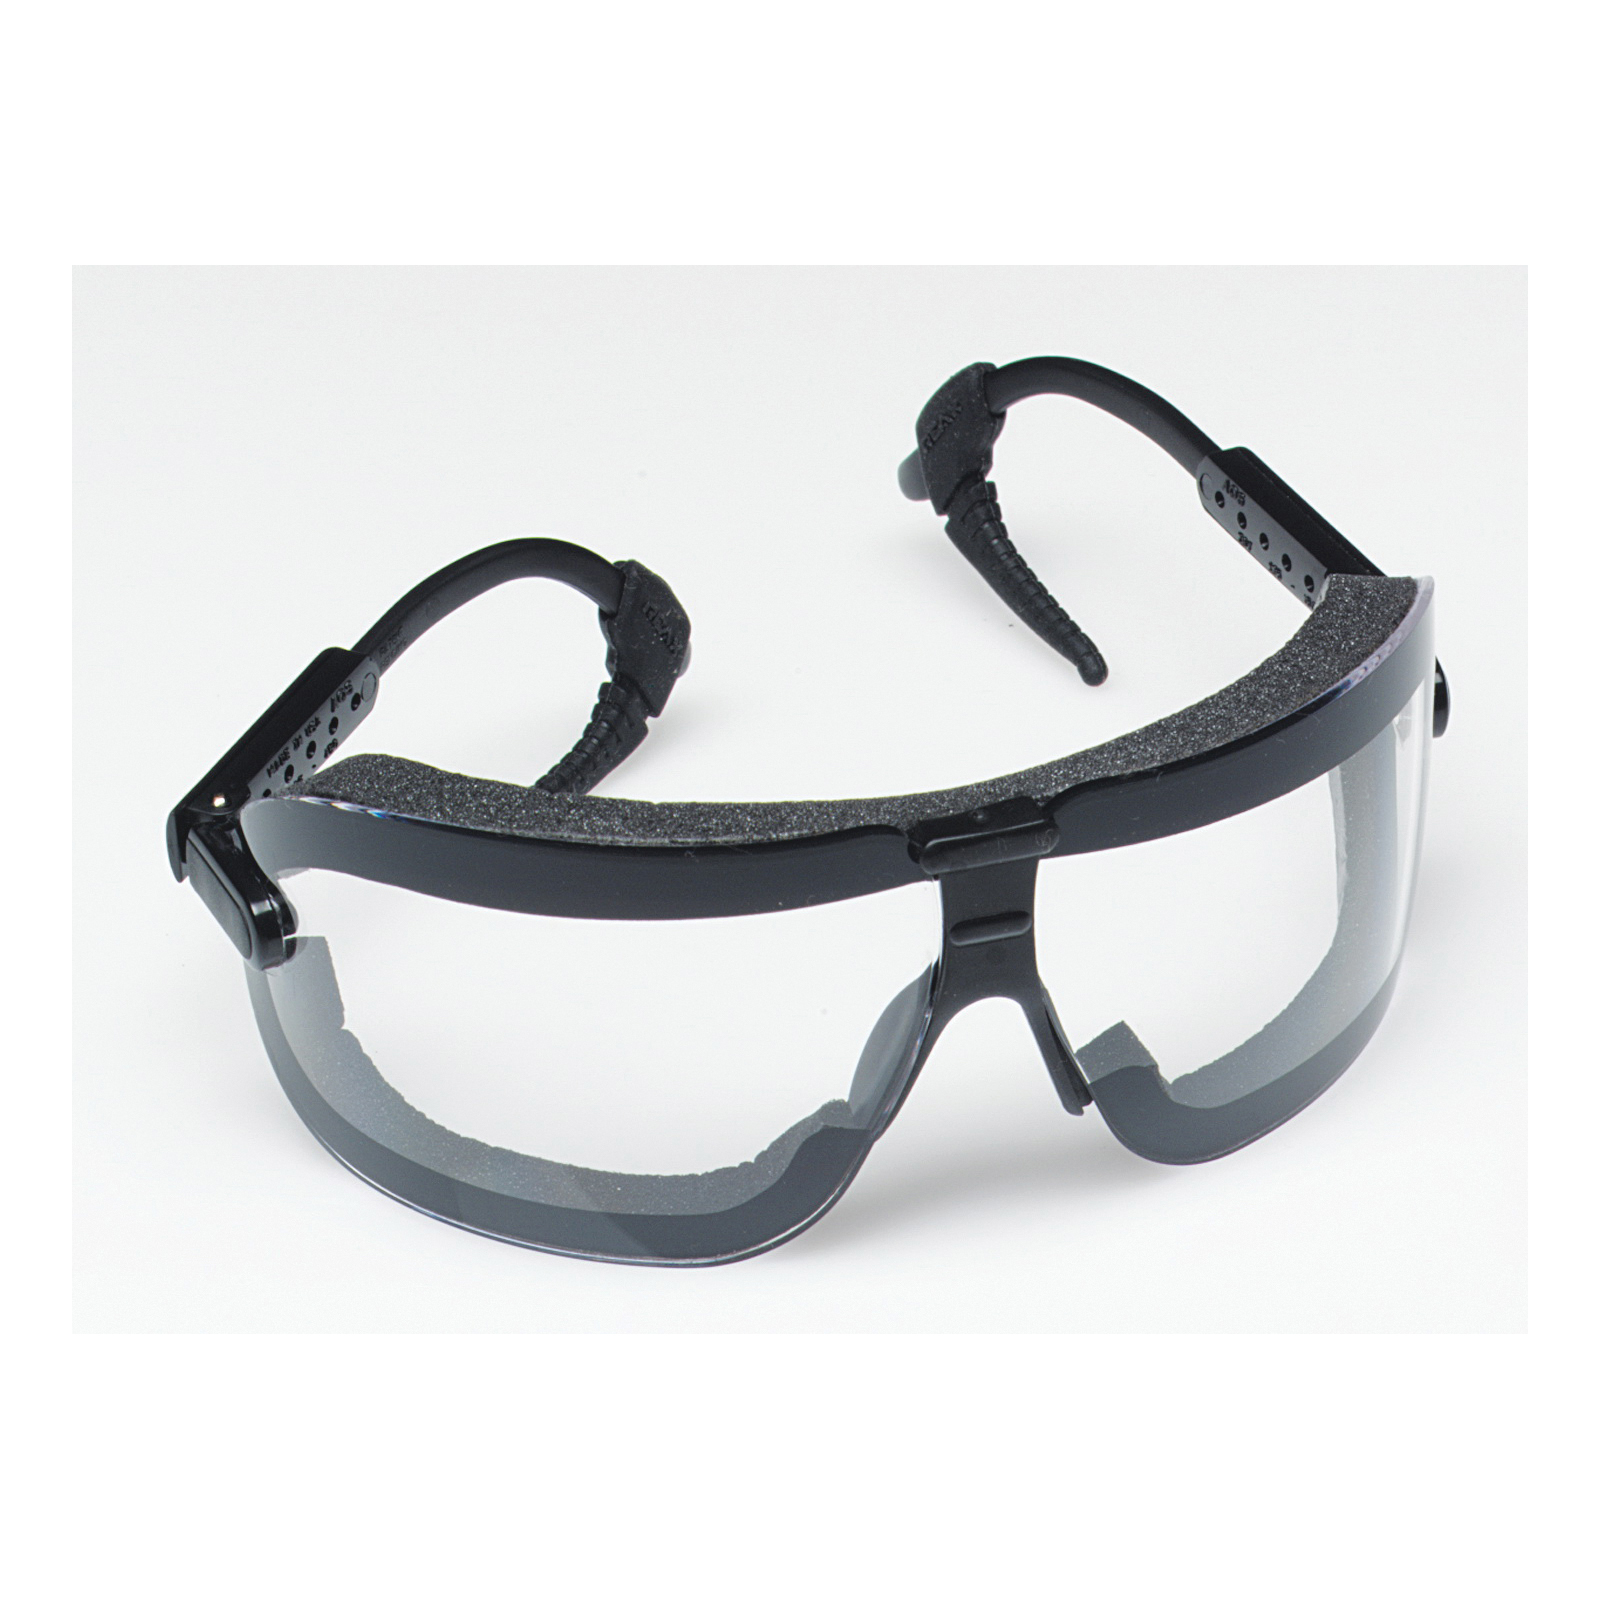 3M™ Fectoggles™ 078371-62322 16408-00000-10 Lightweight Safety Goggles, Anti-Fog/Anti-Scratch Clear Polycarbonate Lens, 99.9% % UV Protection, Elastic Strap, Specifications Met: ANSI Z87.1-2015, CSA Z94.3